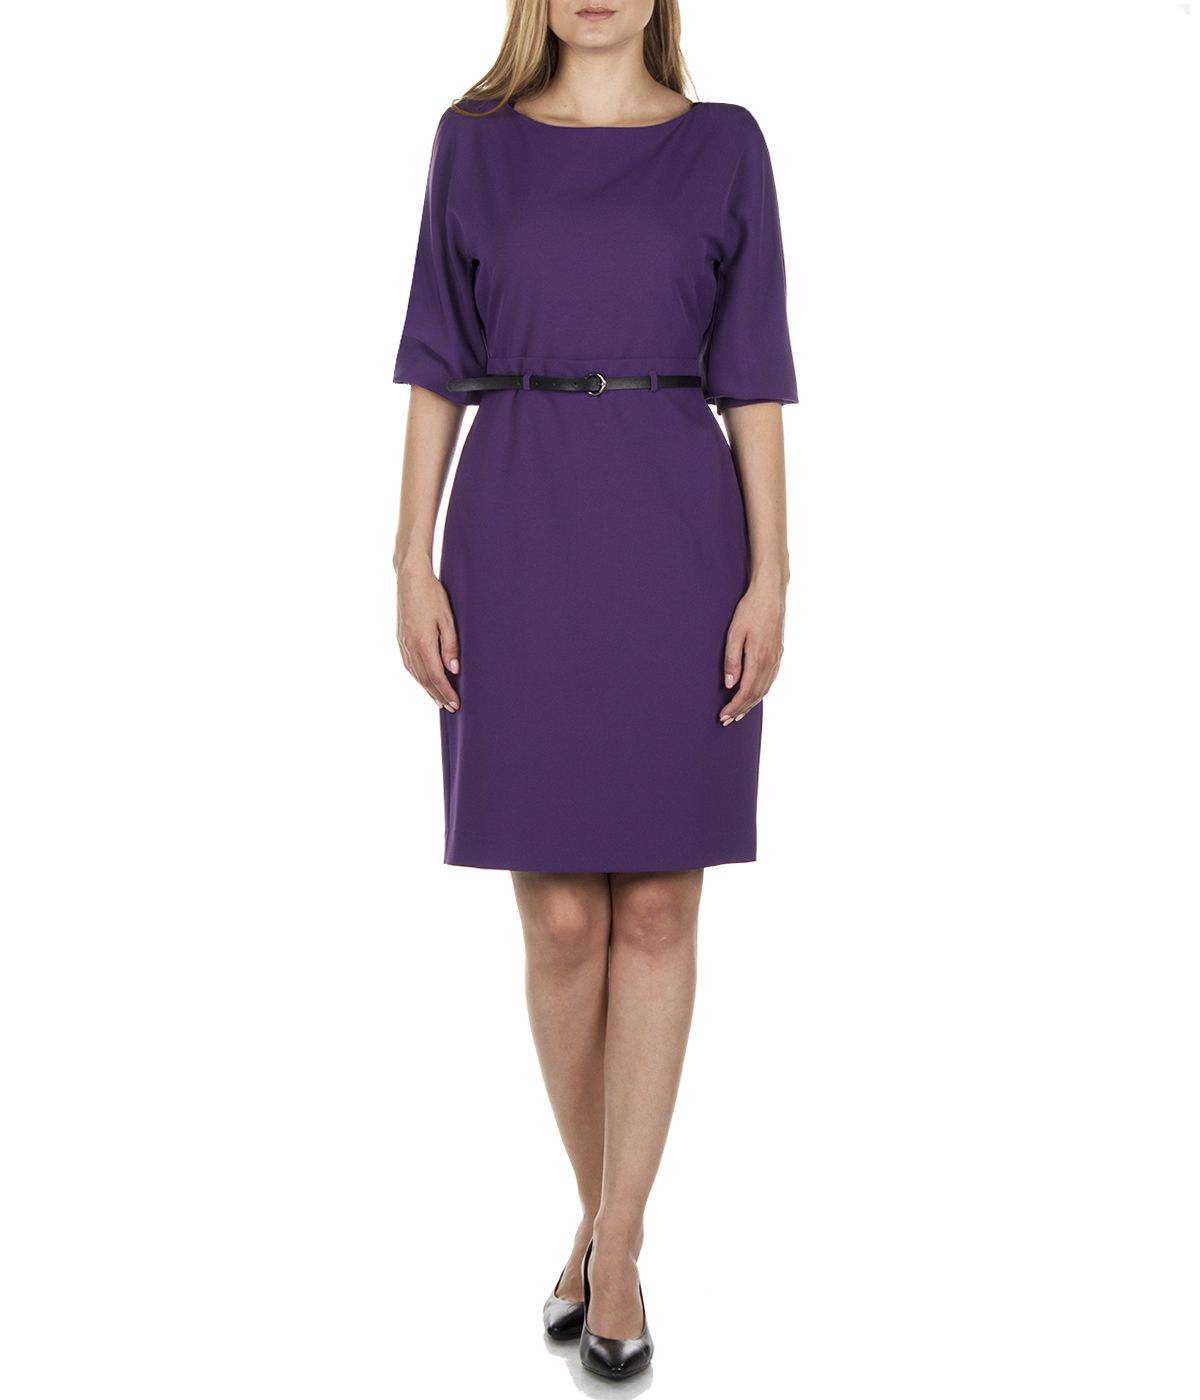 PURPLE LONG SLEEVES DRESS WITH LEATHER BELT 2